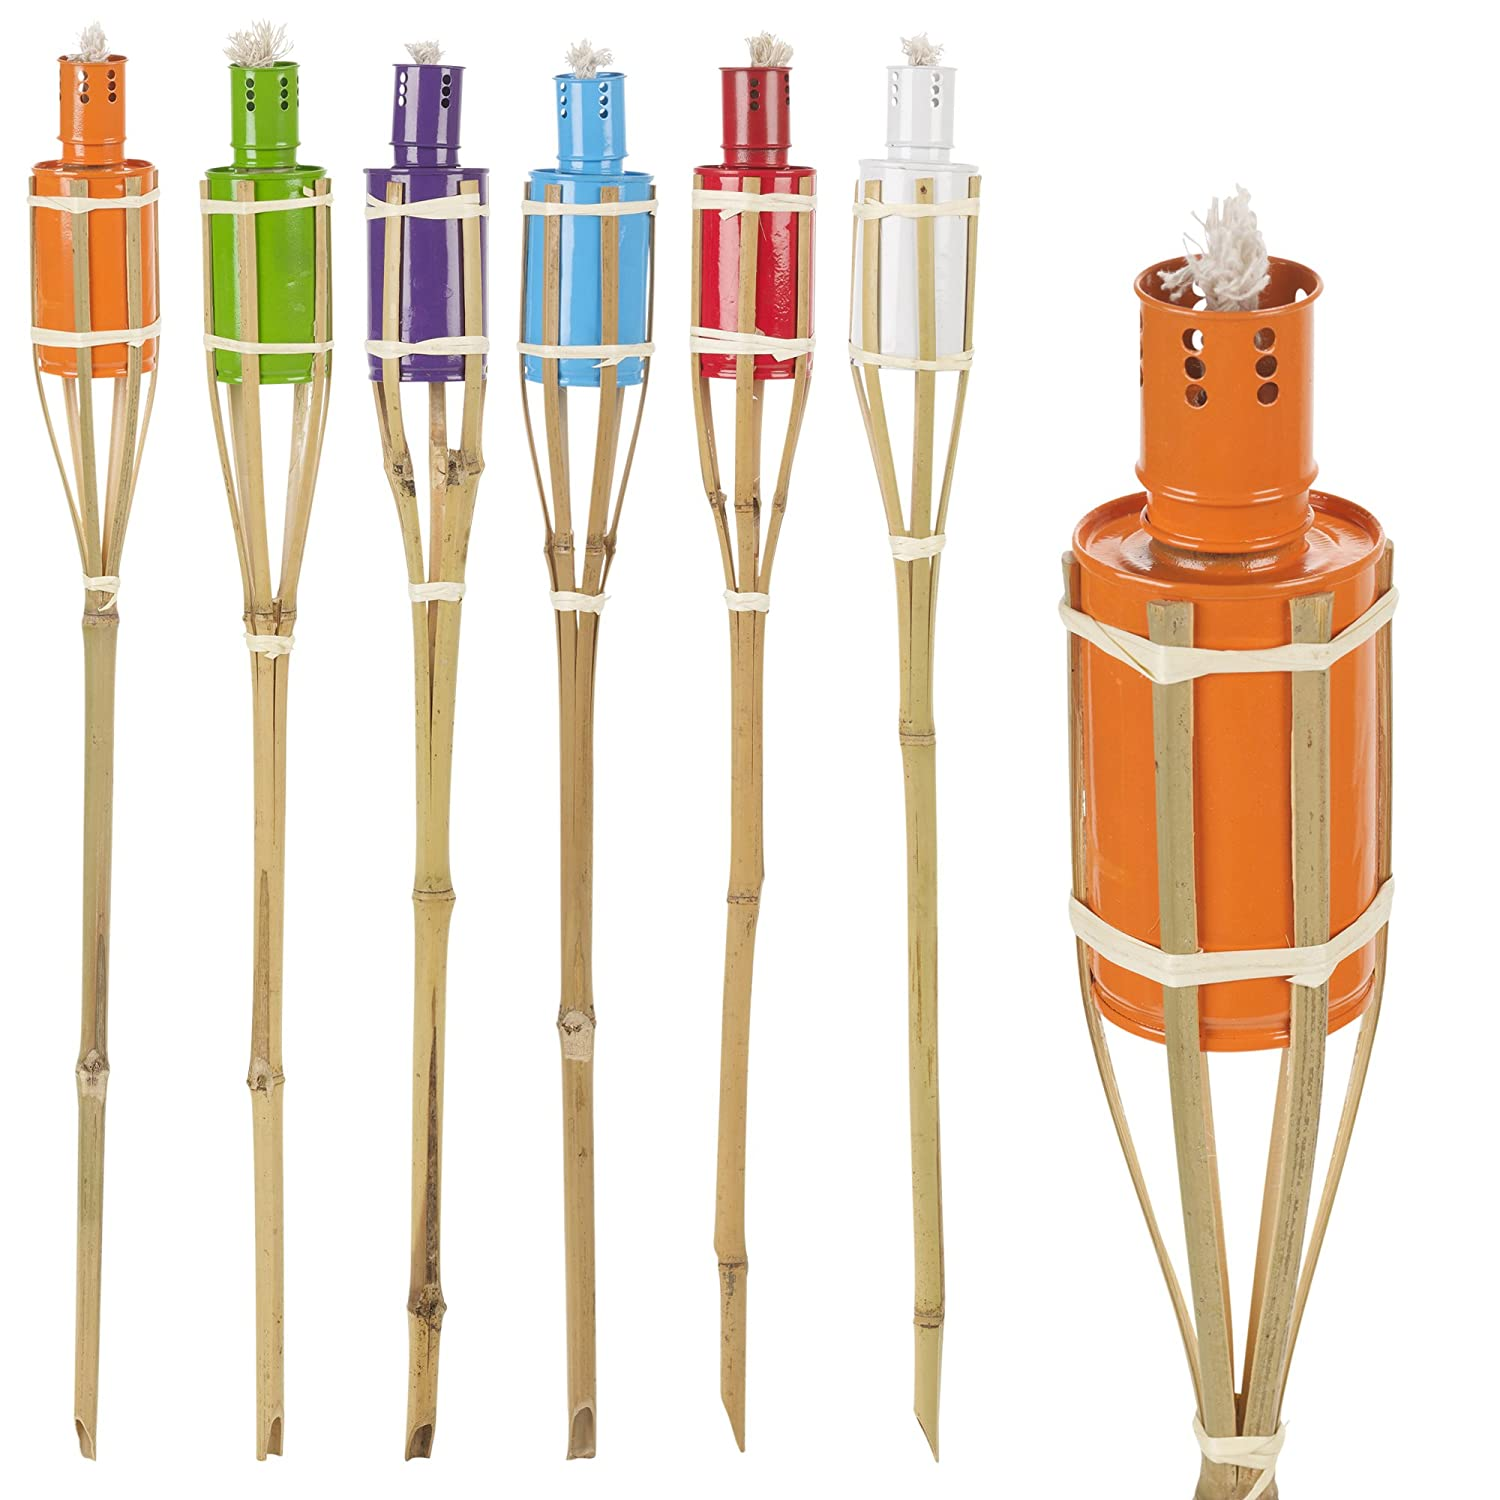 6 Assorted Colour Outdoor Garden Oil Paraffin Torches 60cm Bamboo Burners EGT